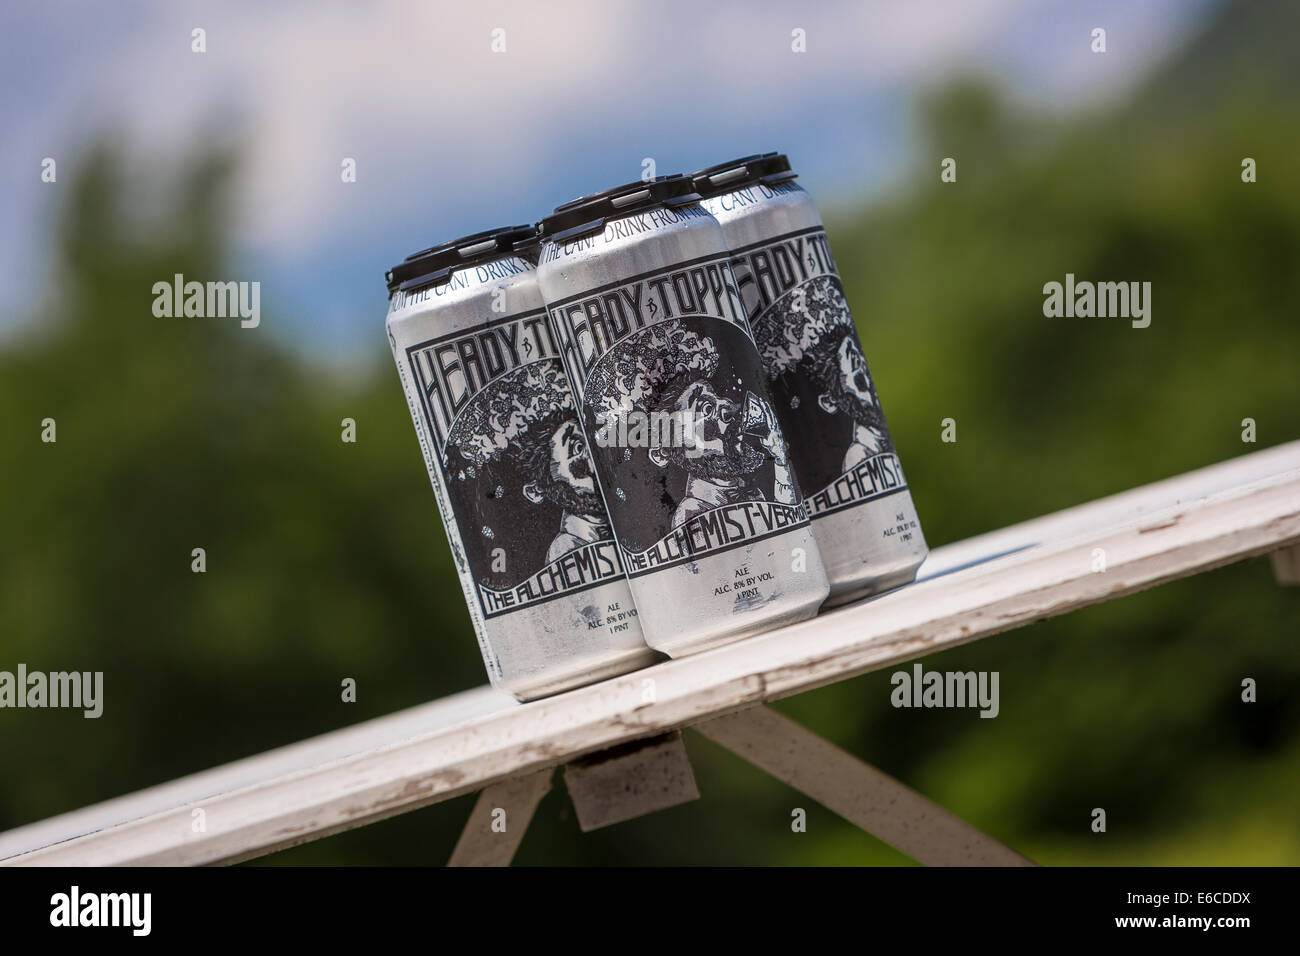 VERMONT, USA - Heady Topper ale, a beer produced by The Alchemist Brewery. - Stock Image